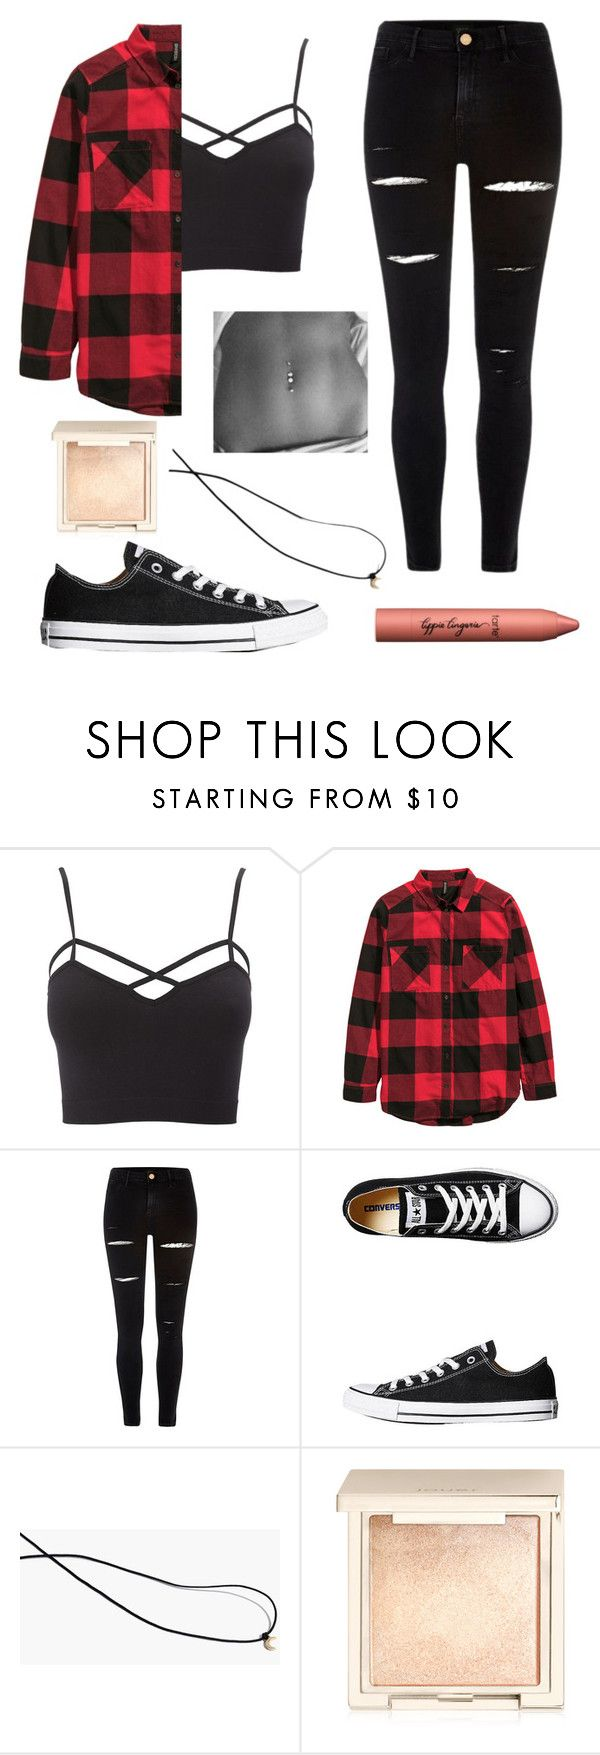 """""""Outfit #32"""" by unicornicamitha on Polyvore featuring Charlotte Russe, River Island, Converse, Madewell, Jouer, tarte and plus size clothing"""